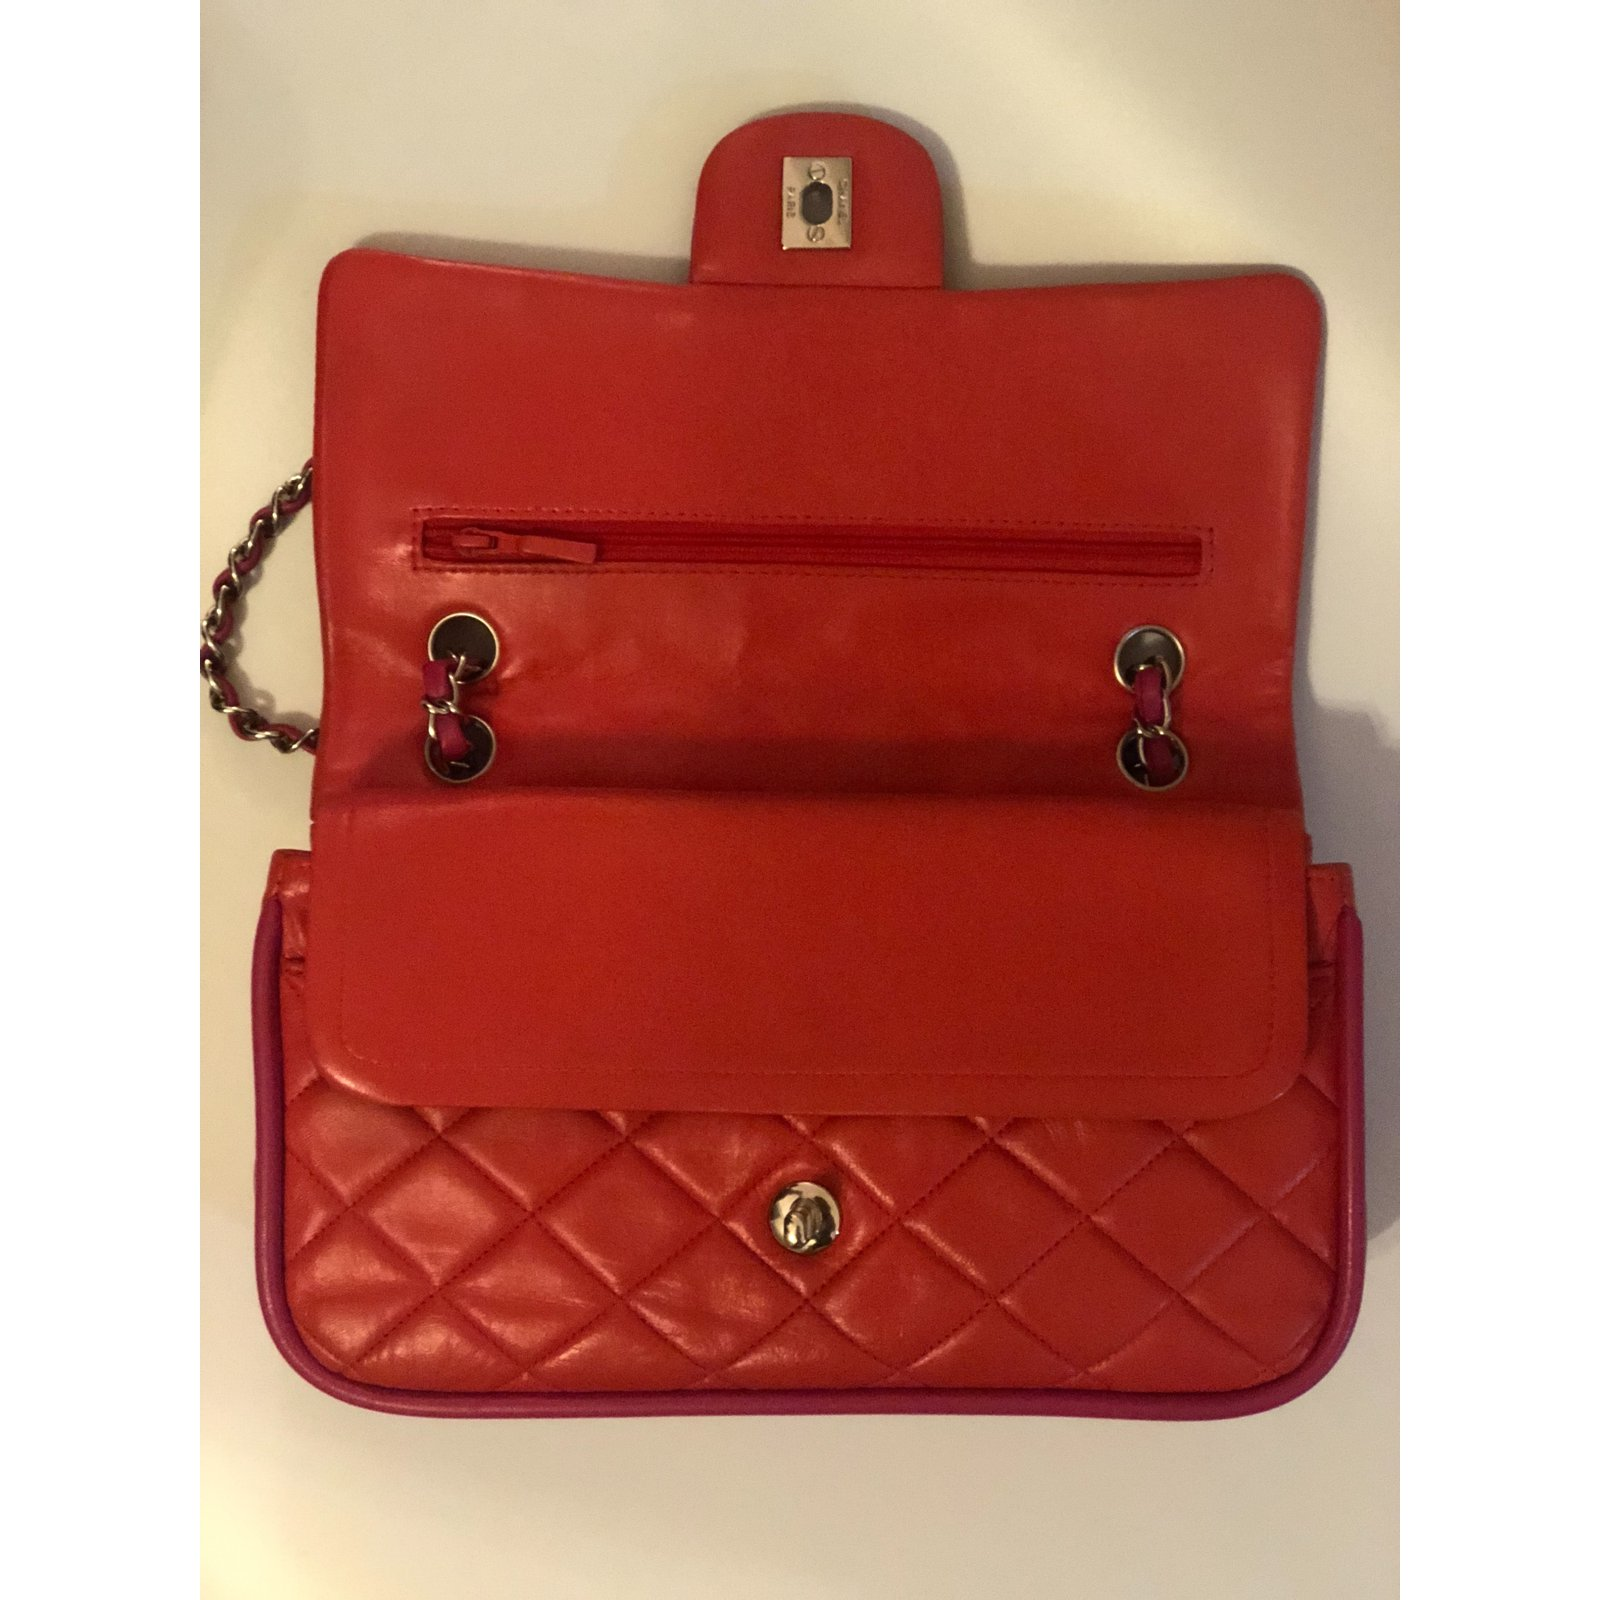 85864eee76b585 Chanel TIMELESS Handbags Lambskin Red ref.106731 - Joli Closet